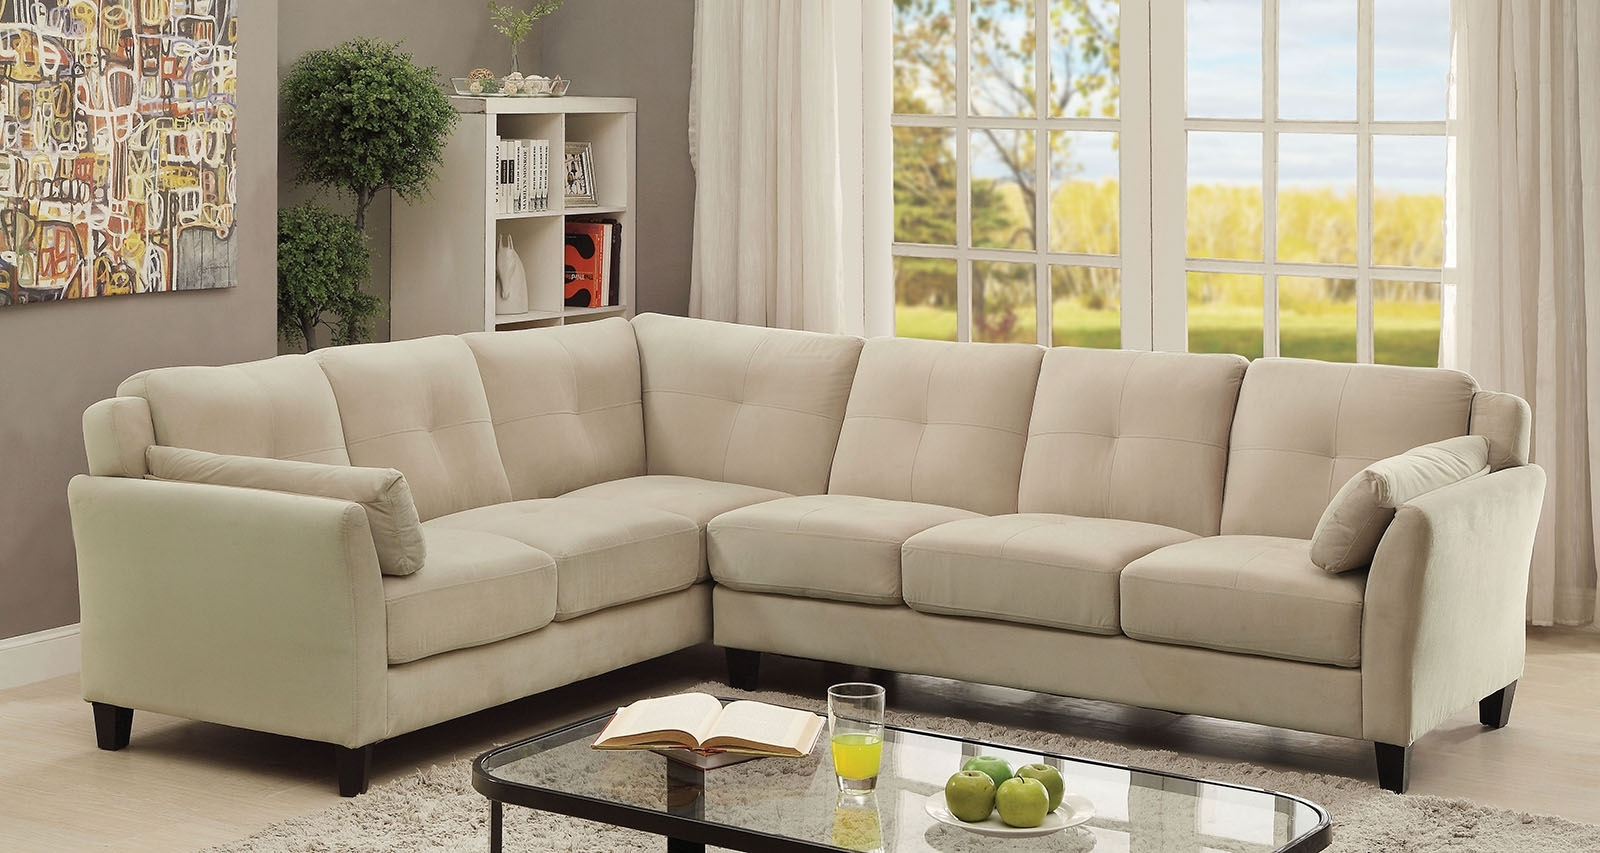 Peever Ii Beige Sectional | Andrew's Furniture And Mattress Inside Beige Sectional Sofas (View 3 of 10)